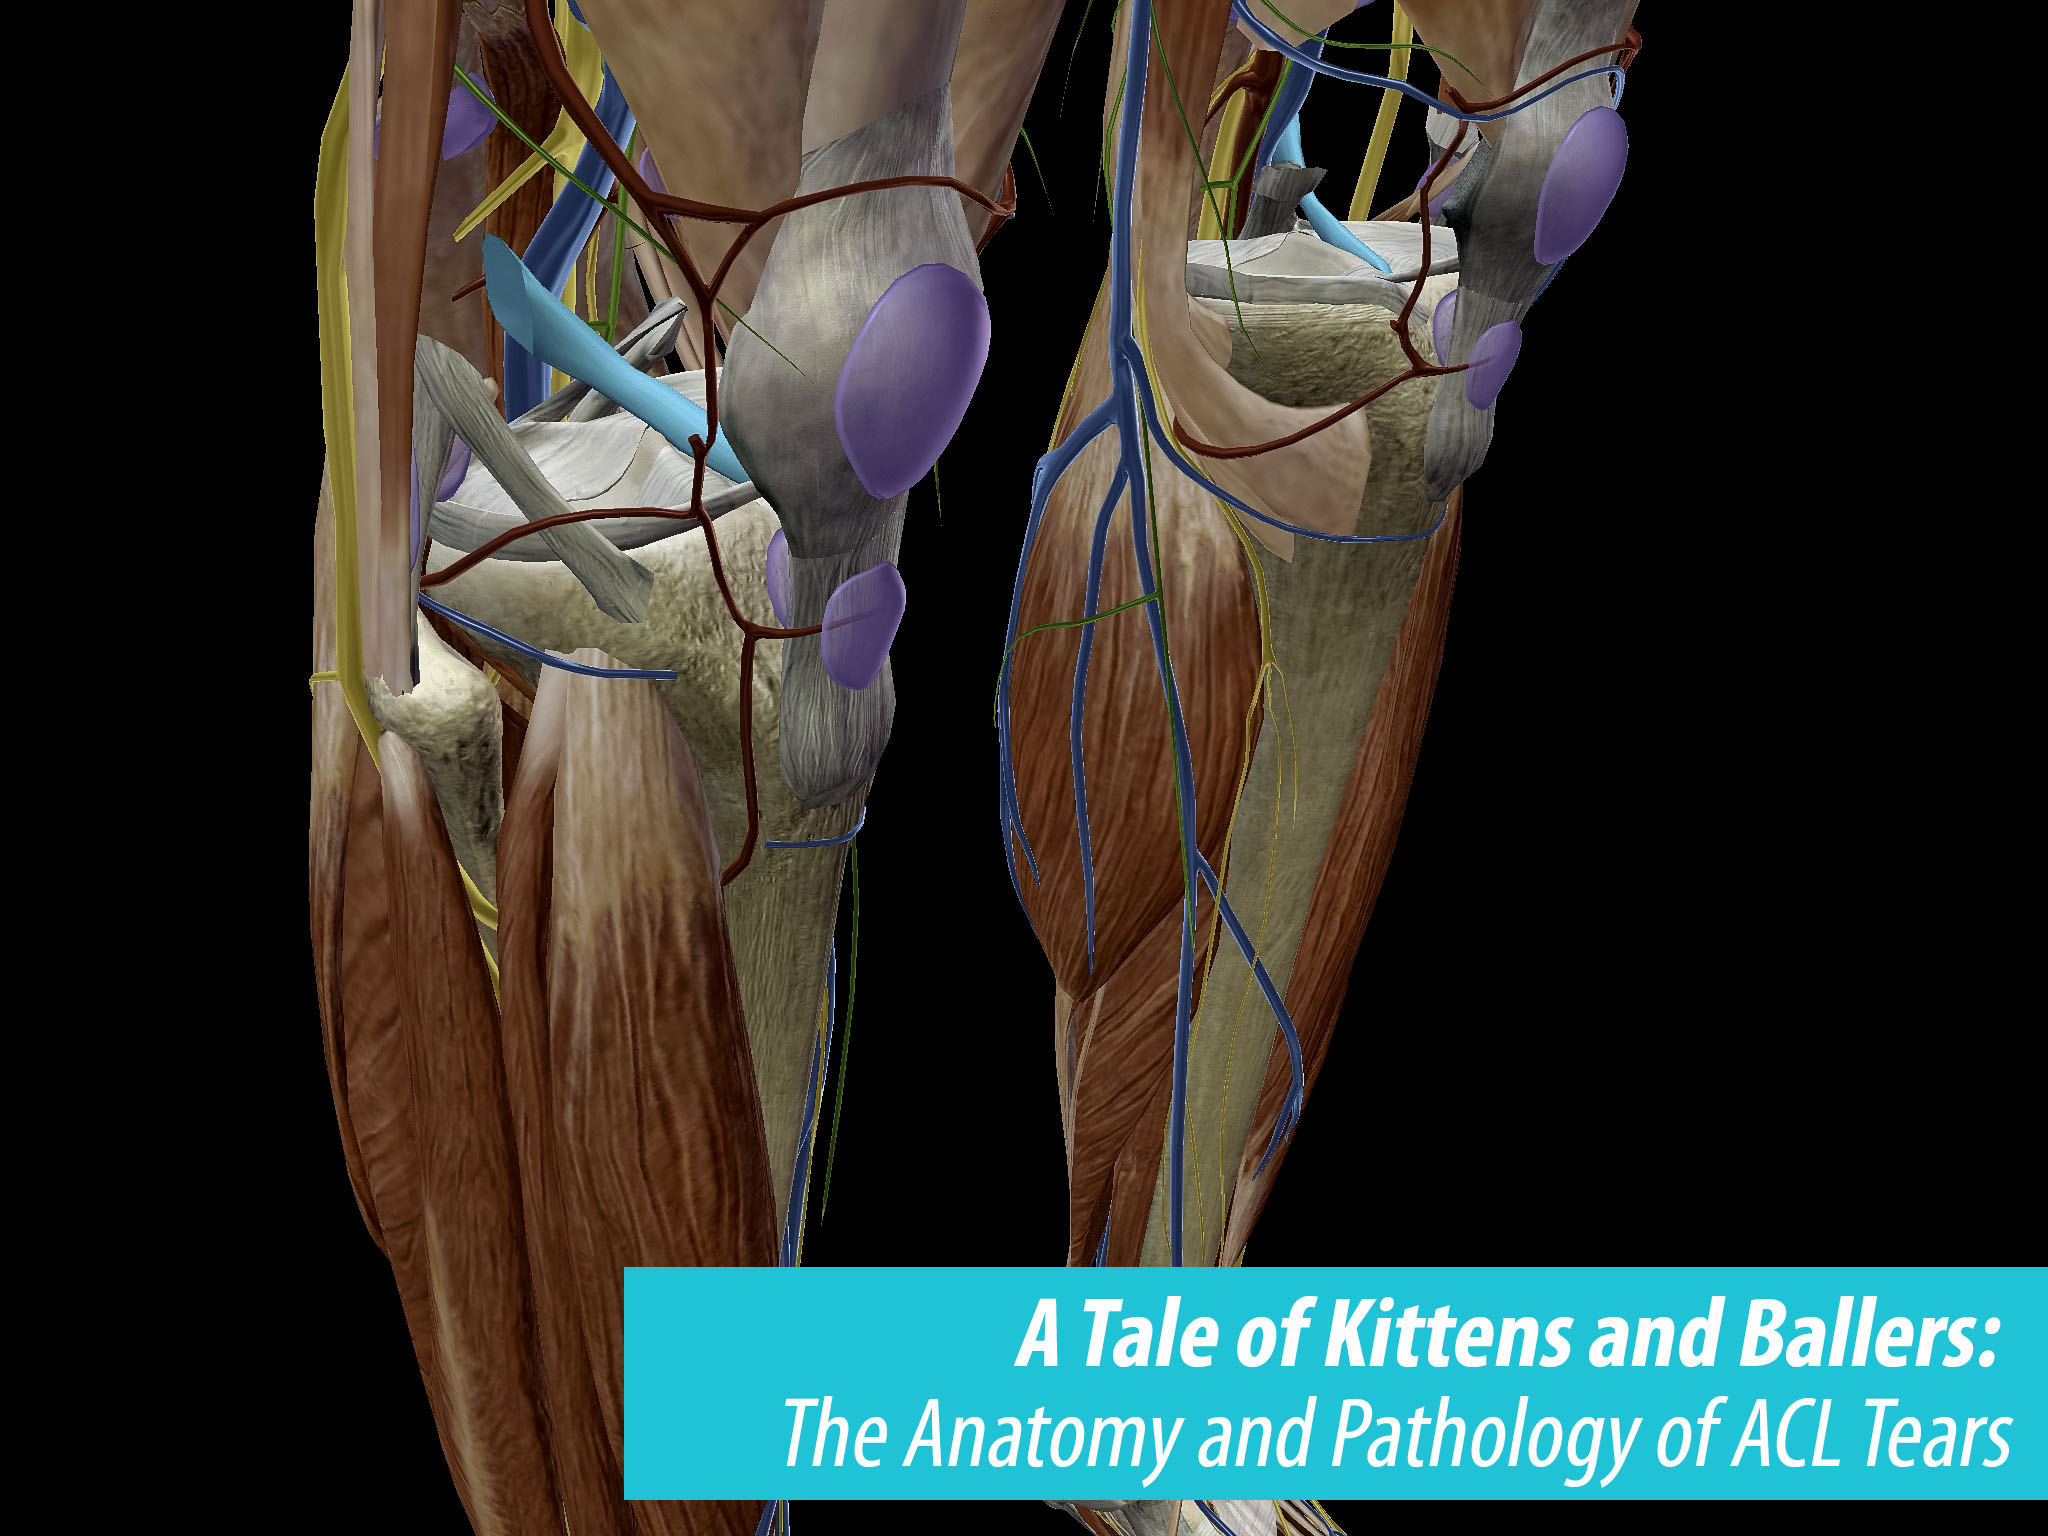 A Tale of Kittens and Ballers: The Anatomy and Pathology of ACL Tears